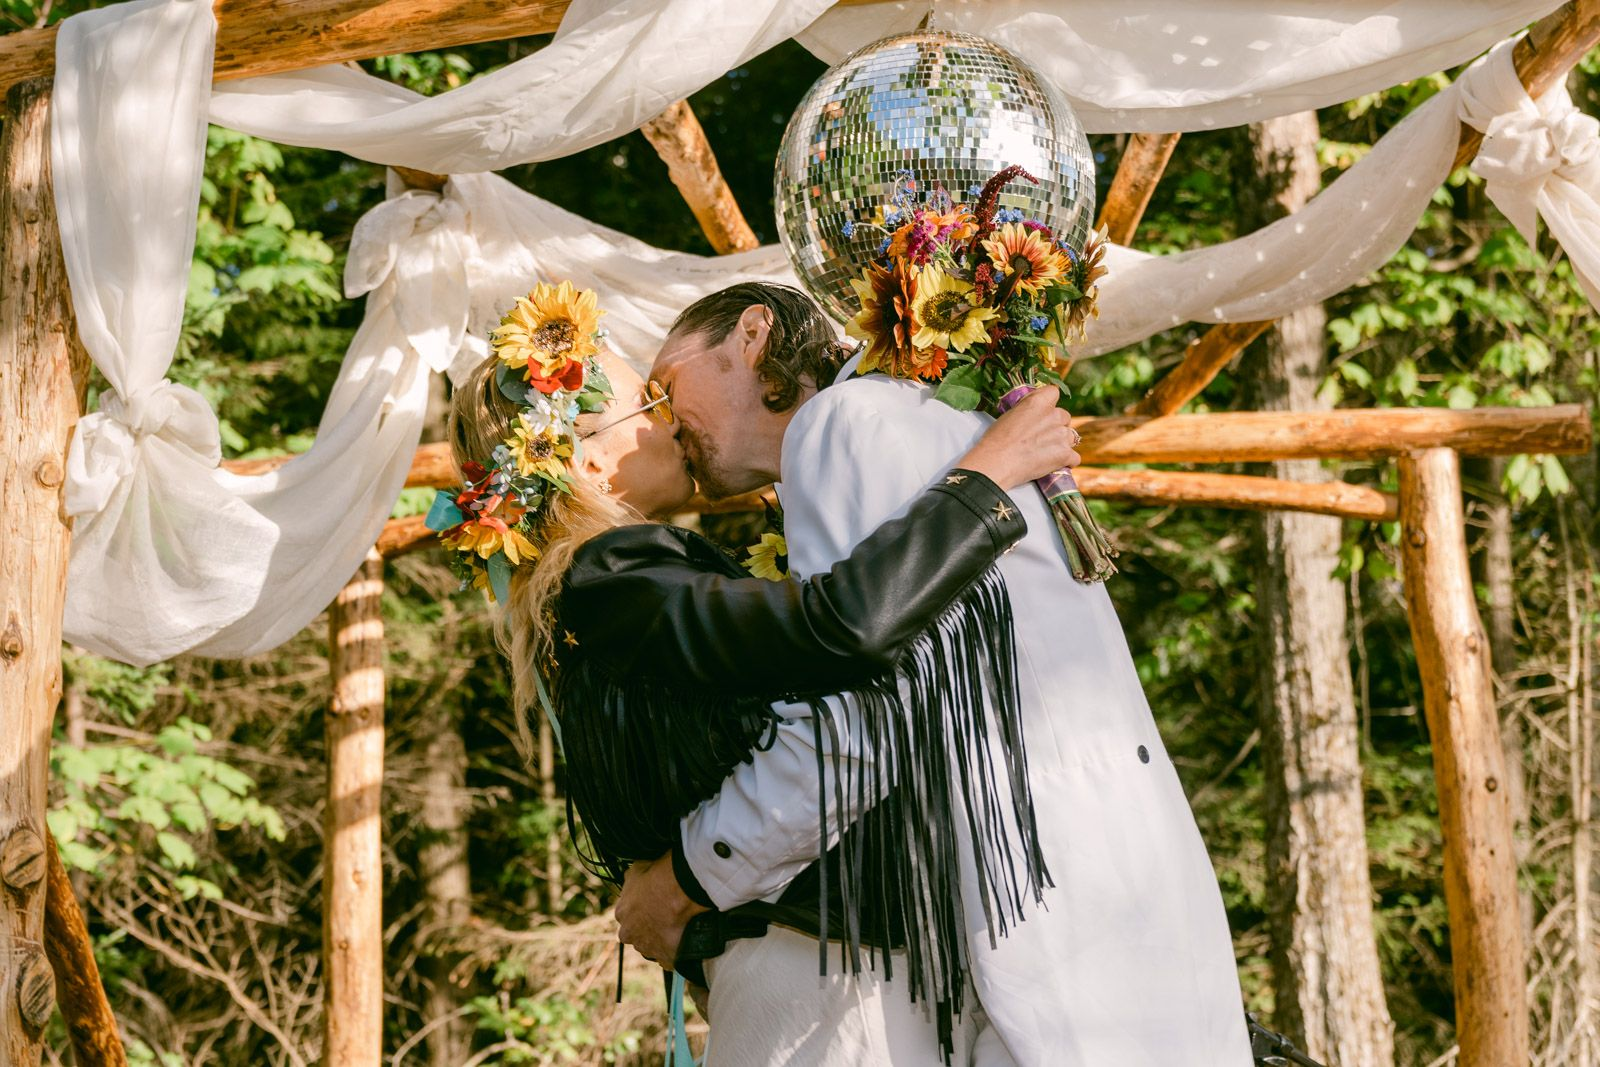 Bride and Groom kissing under a disco ball outdoors